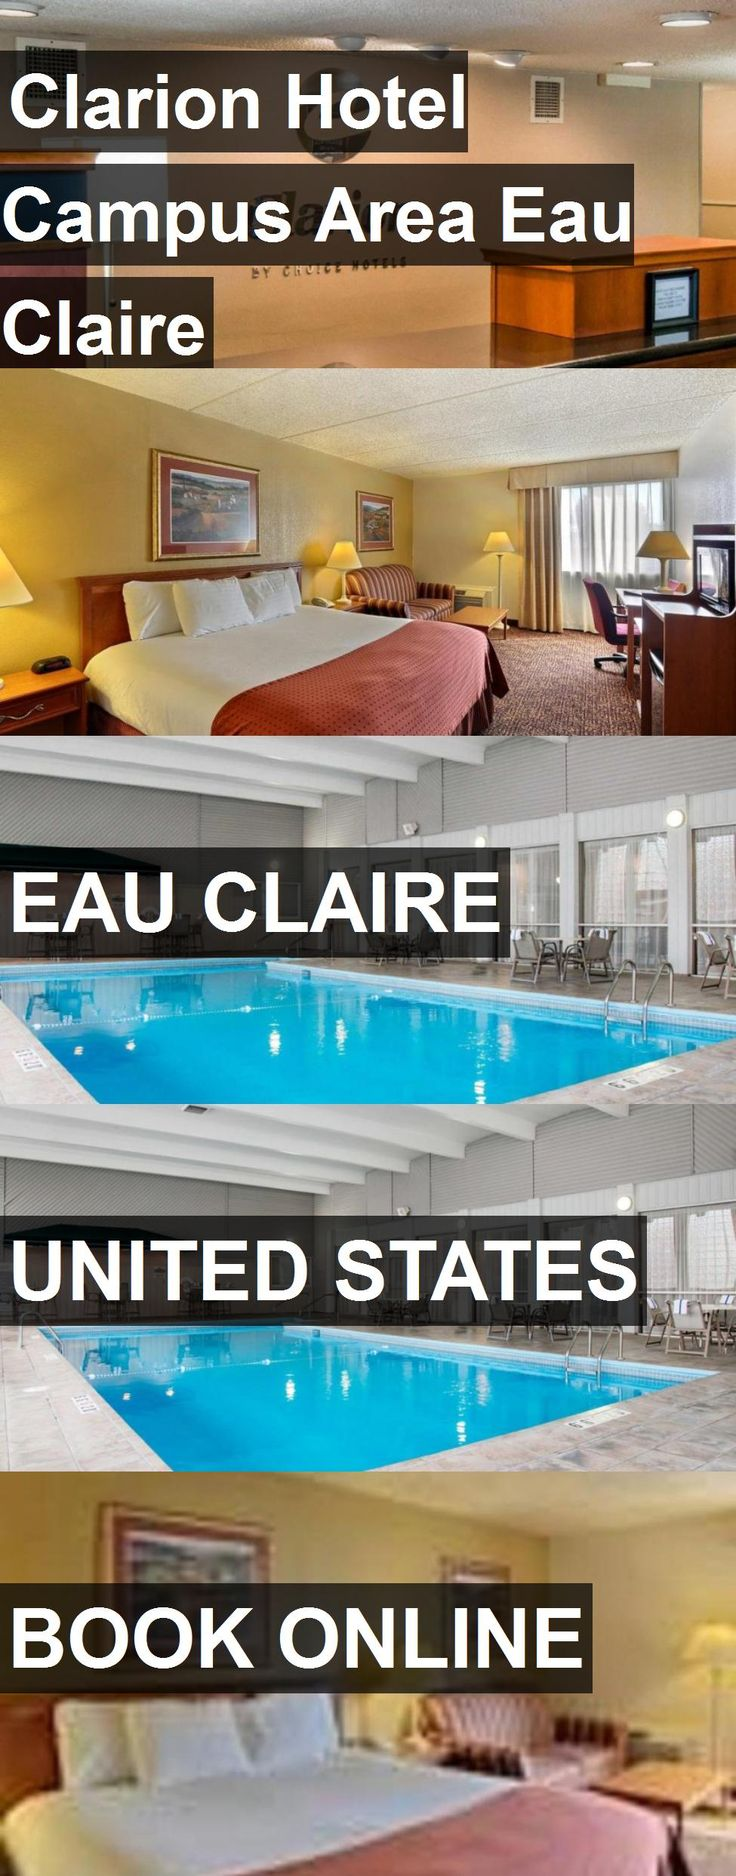 Clarion Hotel Campus Area Eau Claire in Eau Claire, United States. For more information, photos, reviews and best prices please follow the link. #UnitedStates #EauClaire #travel #vacation #hotel